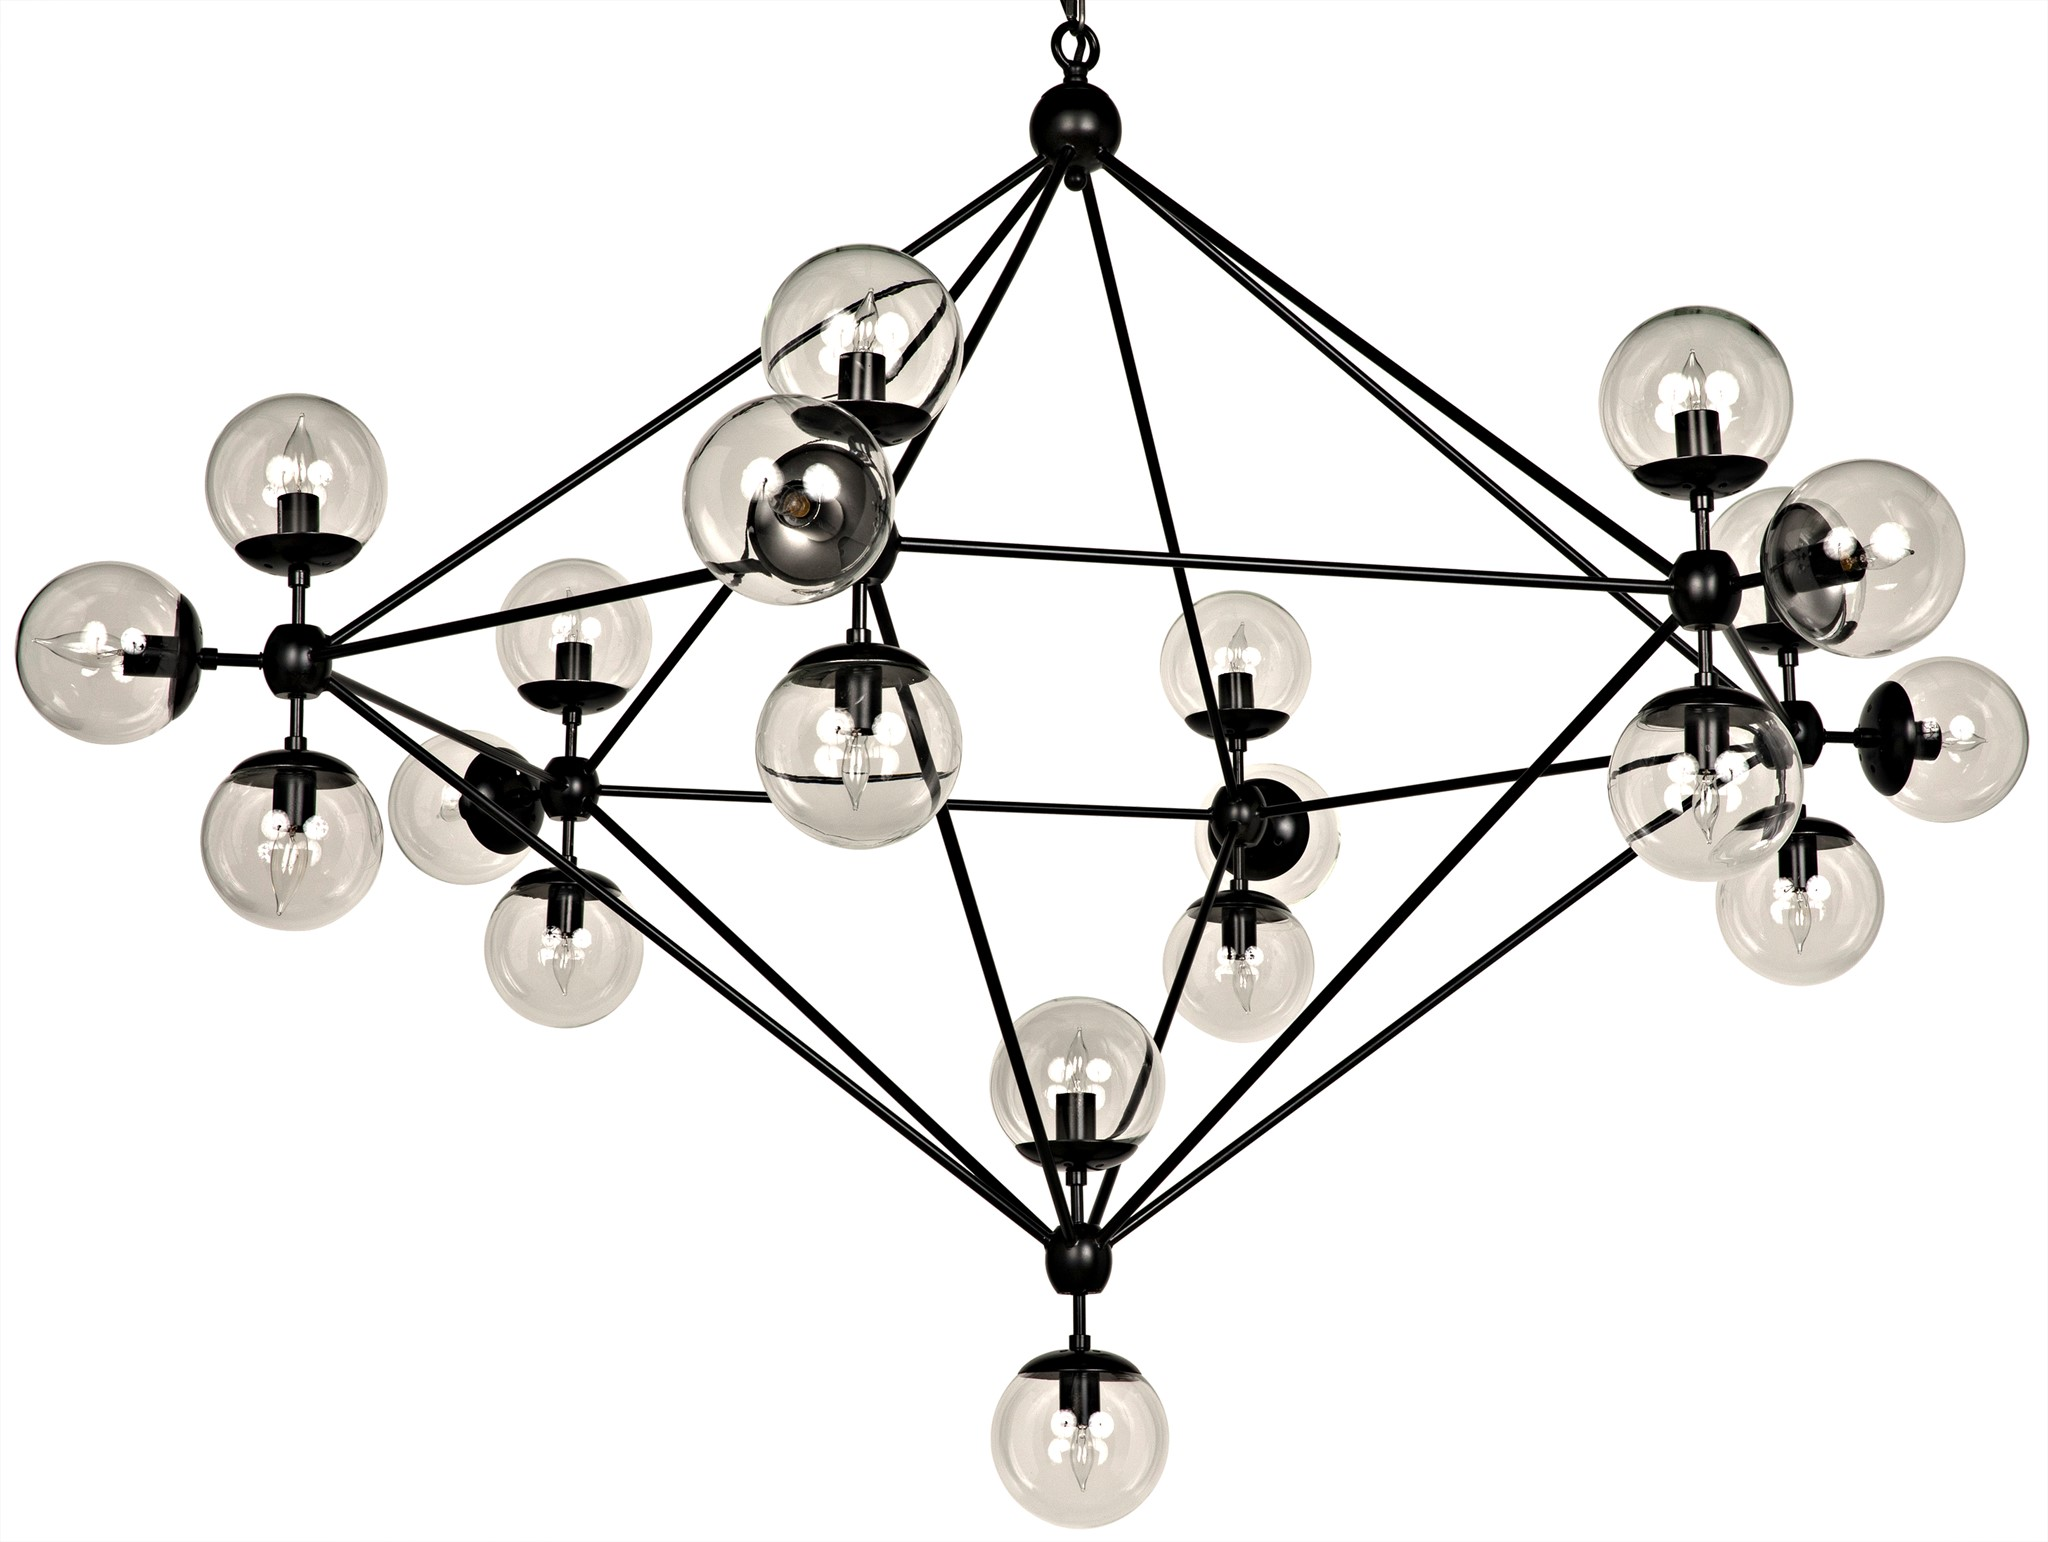 Qs pluto chandelier large chandeliers download image arubaitofo Choice Image